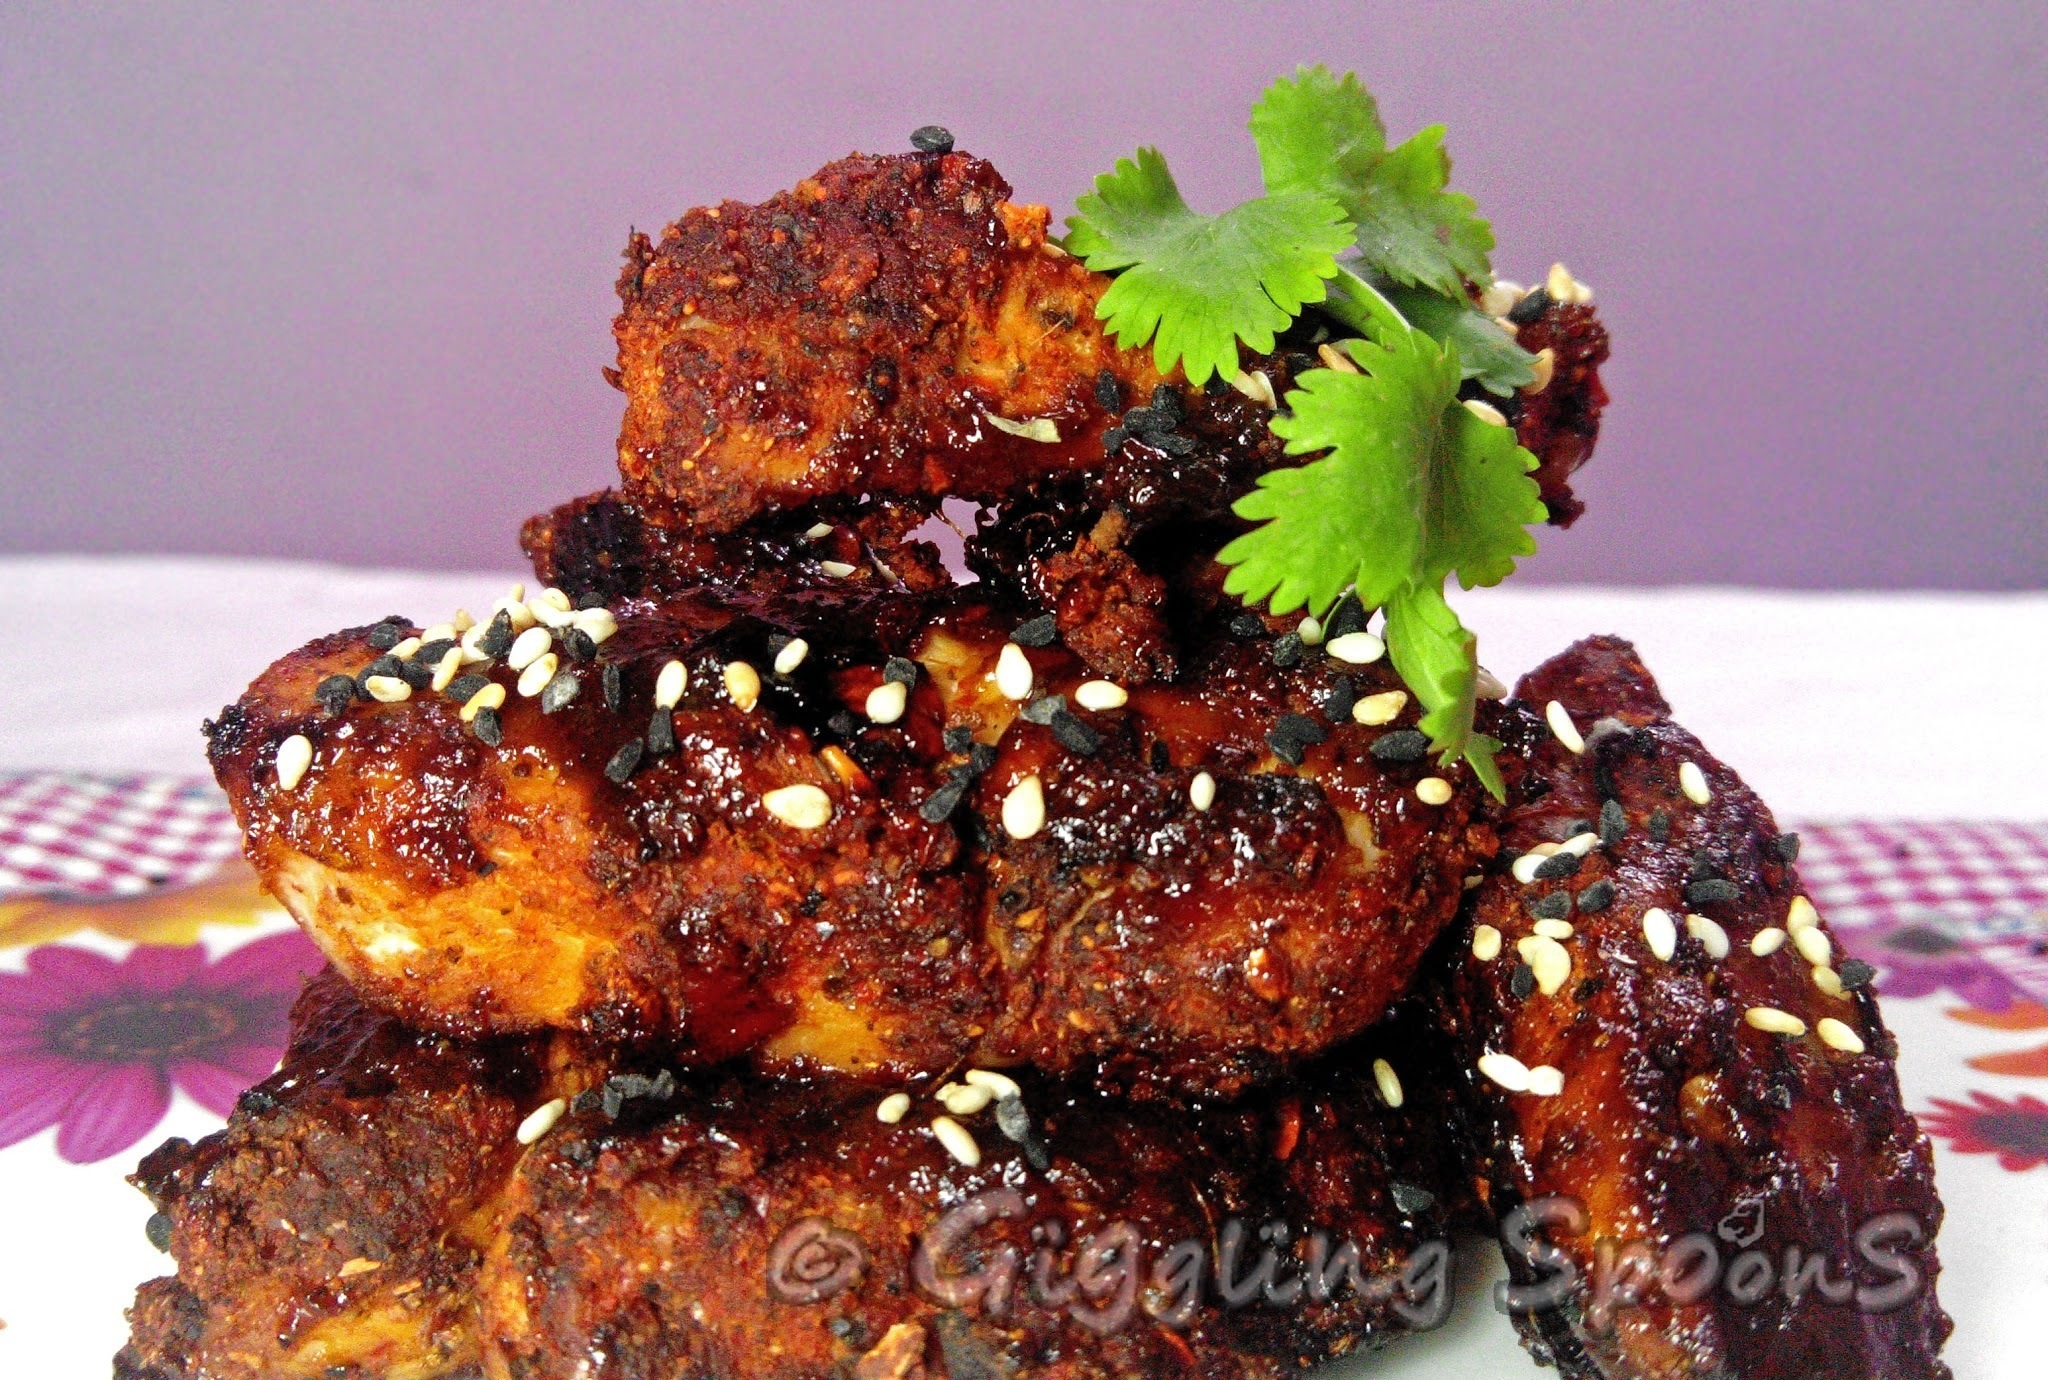 Grilled Chicken in Barbeque Sauce